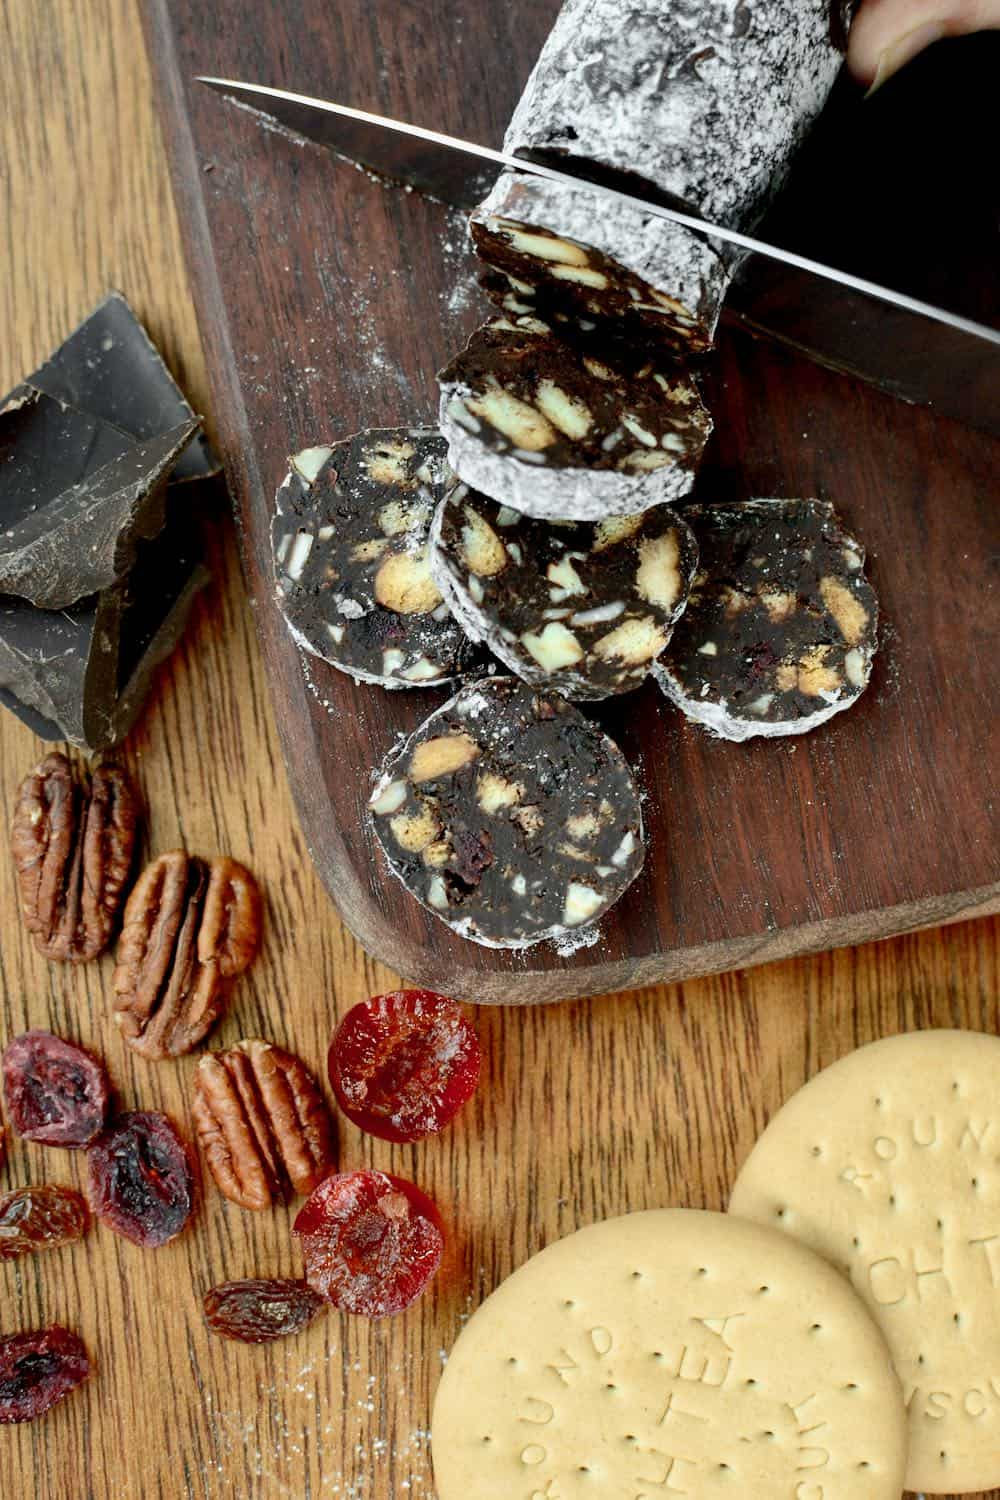 Slices of chocolate salami revealing the nutty, fruity and biscuity inside!